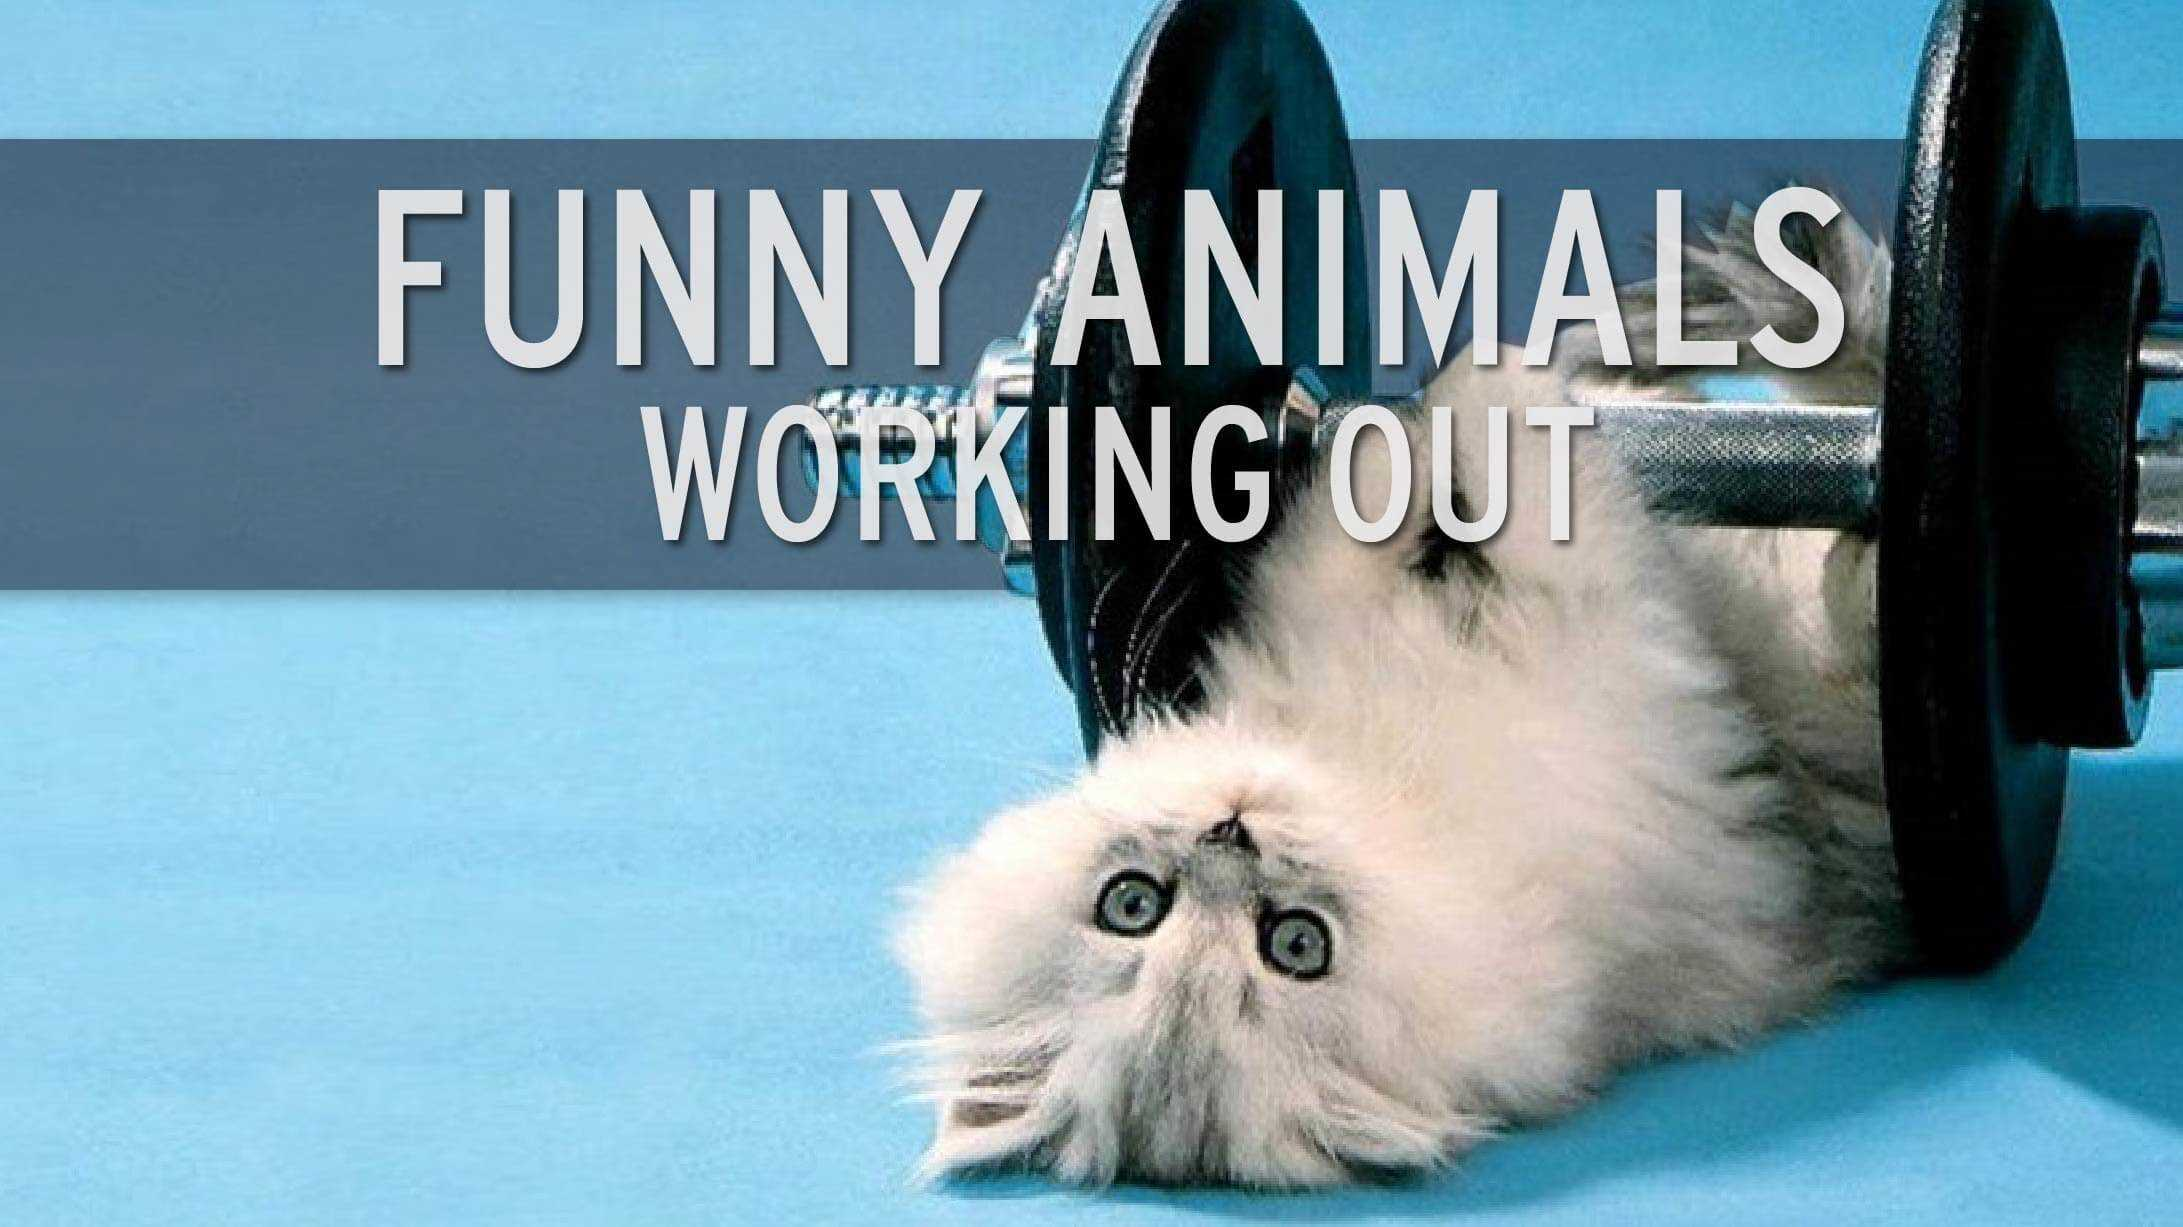 Funny: animalutele fac fitness